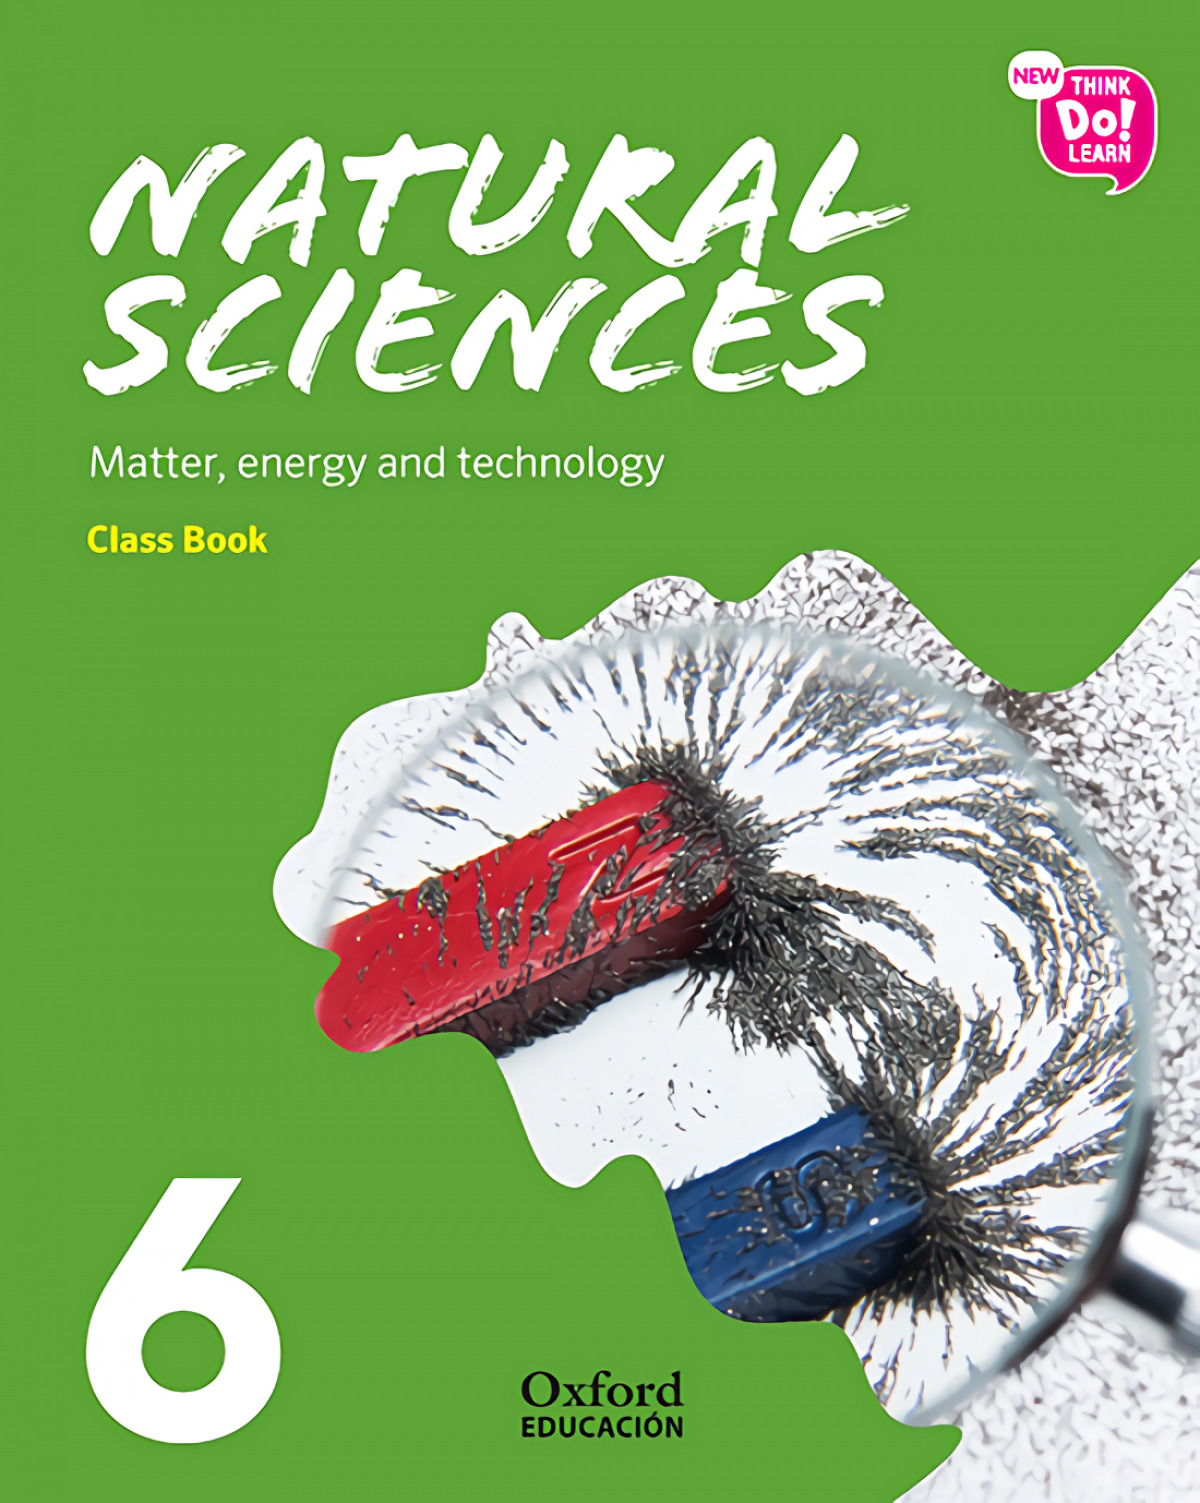 NATURAL SCIENCE 6 PRIMARY MODULE 3 COURSEBOOK PACK NEW THINK DO LEARN